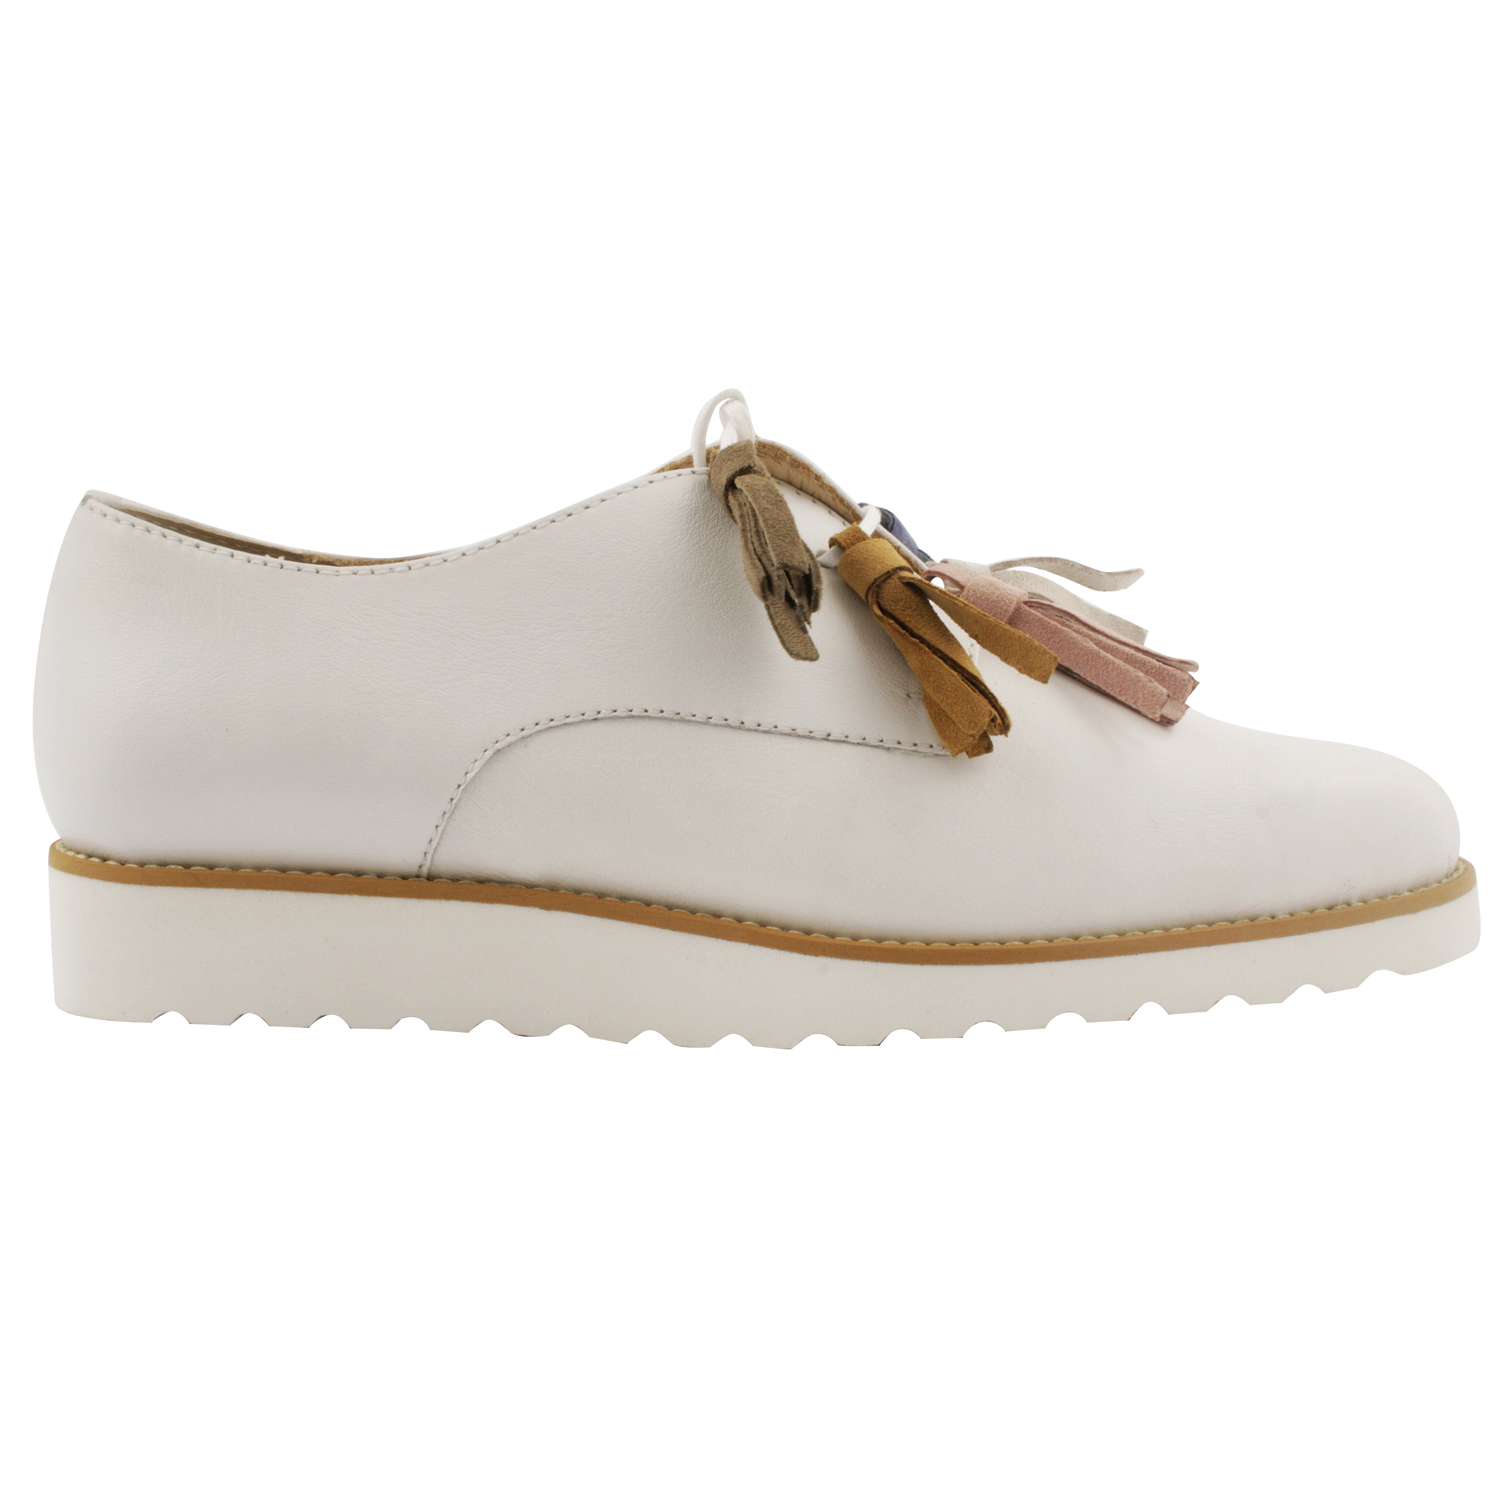 Exclusif Paris Adeline - Derbies en cuir - blanc